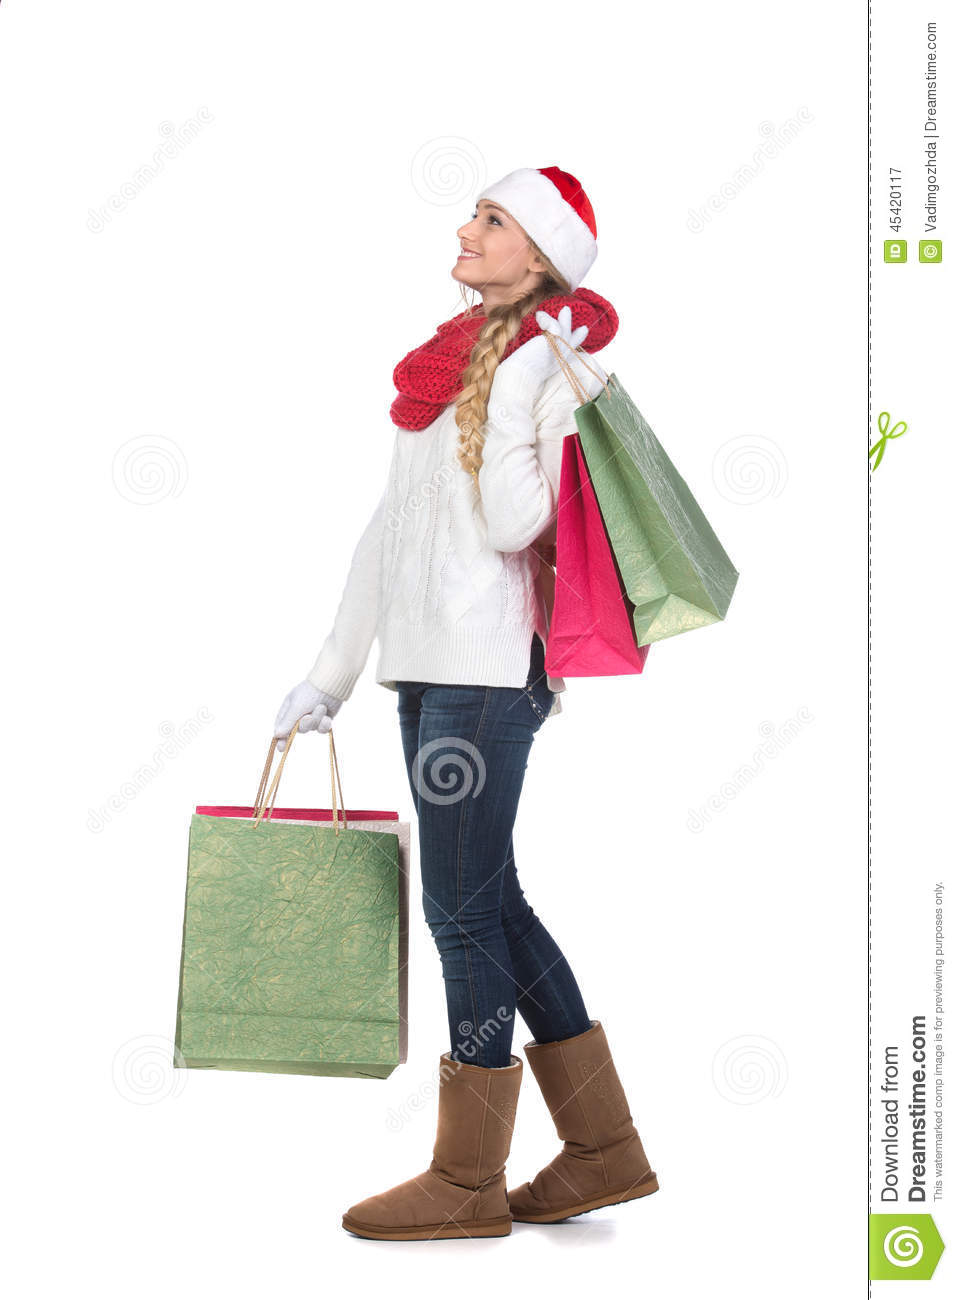 Christmas women stock image. Image of person, happy, fashion - 45420117